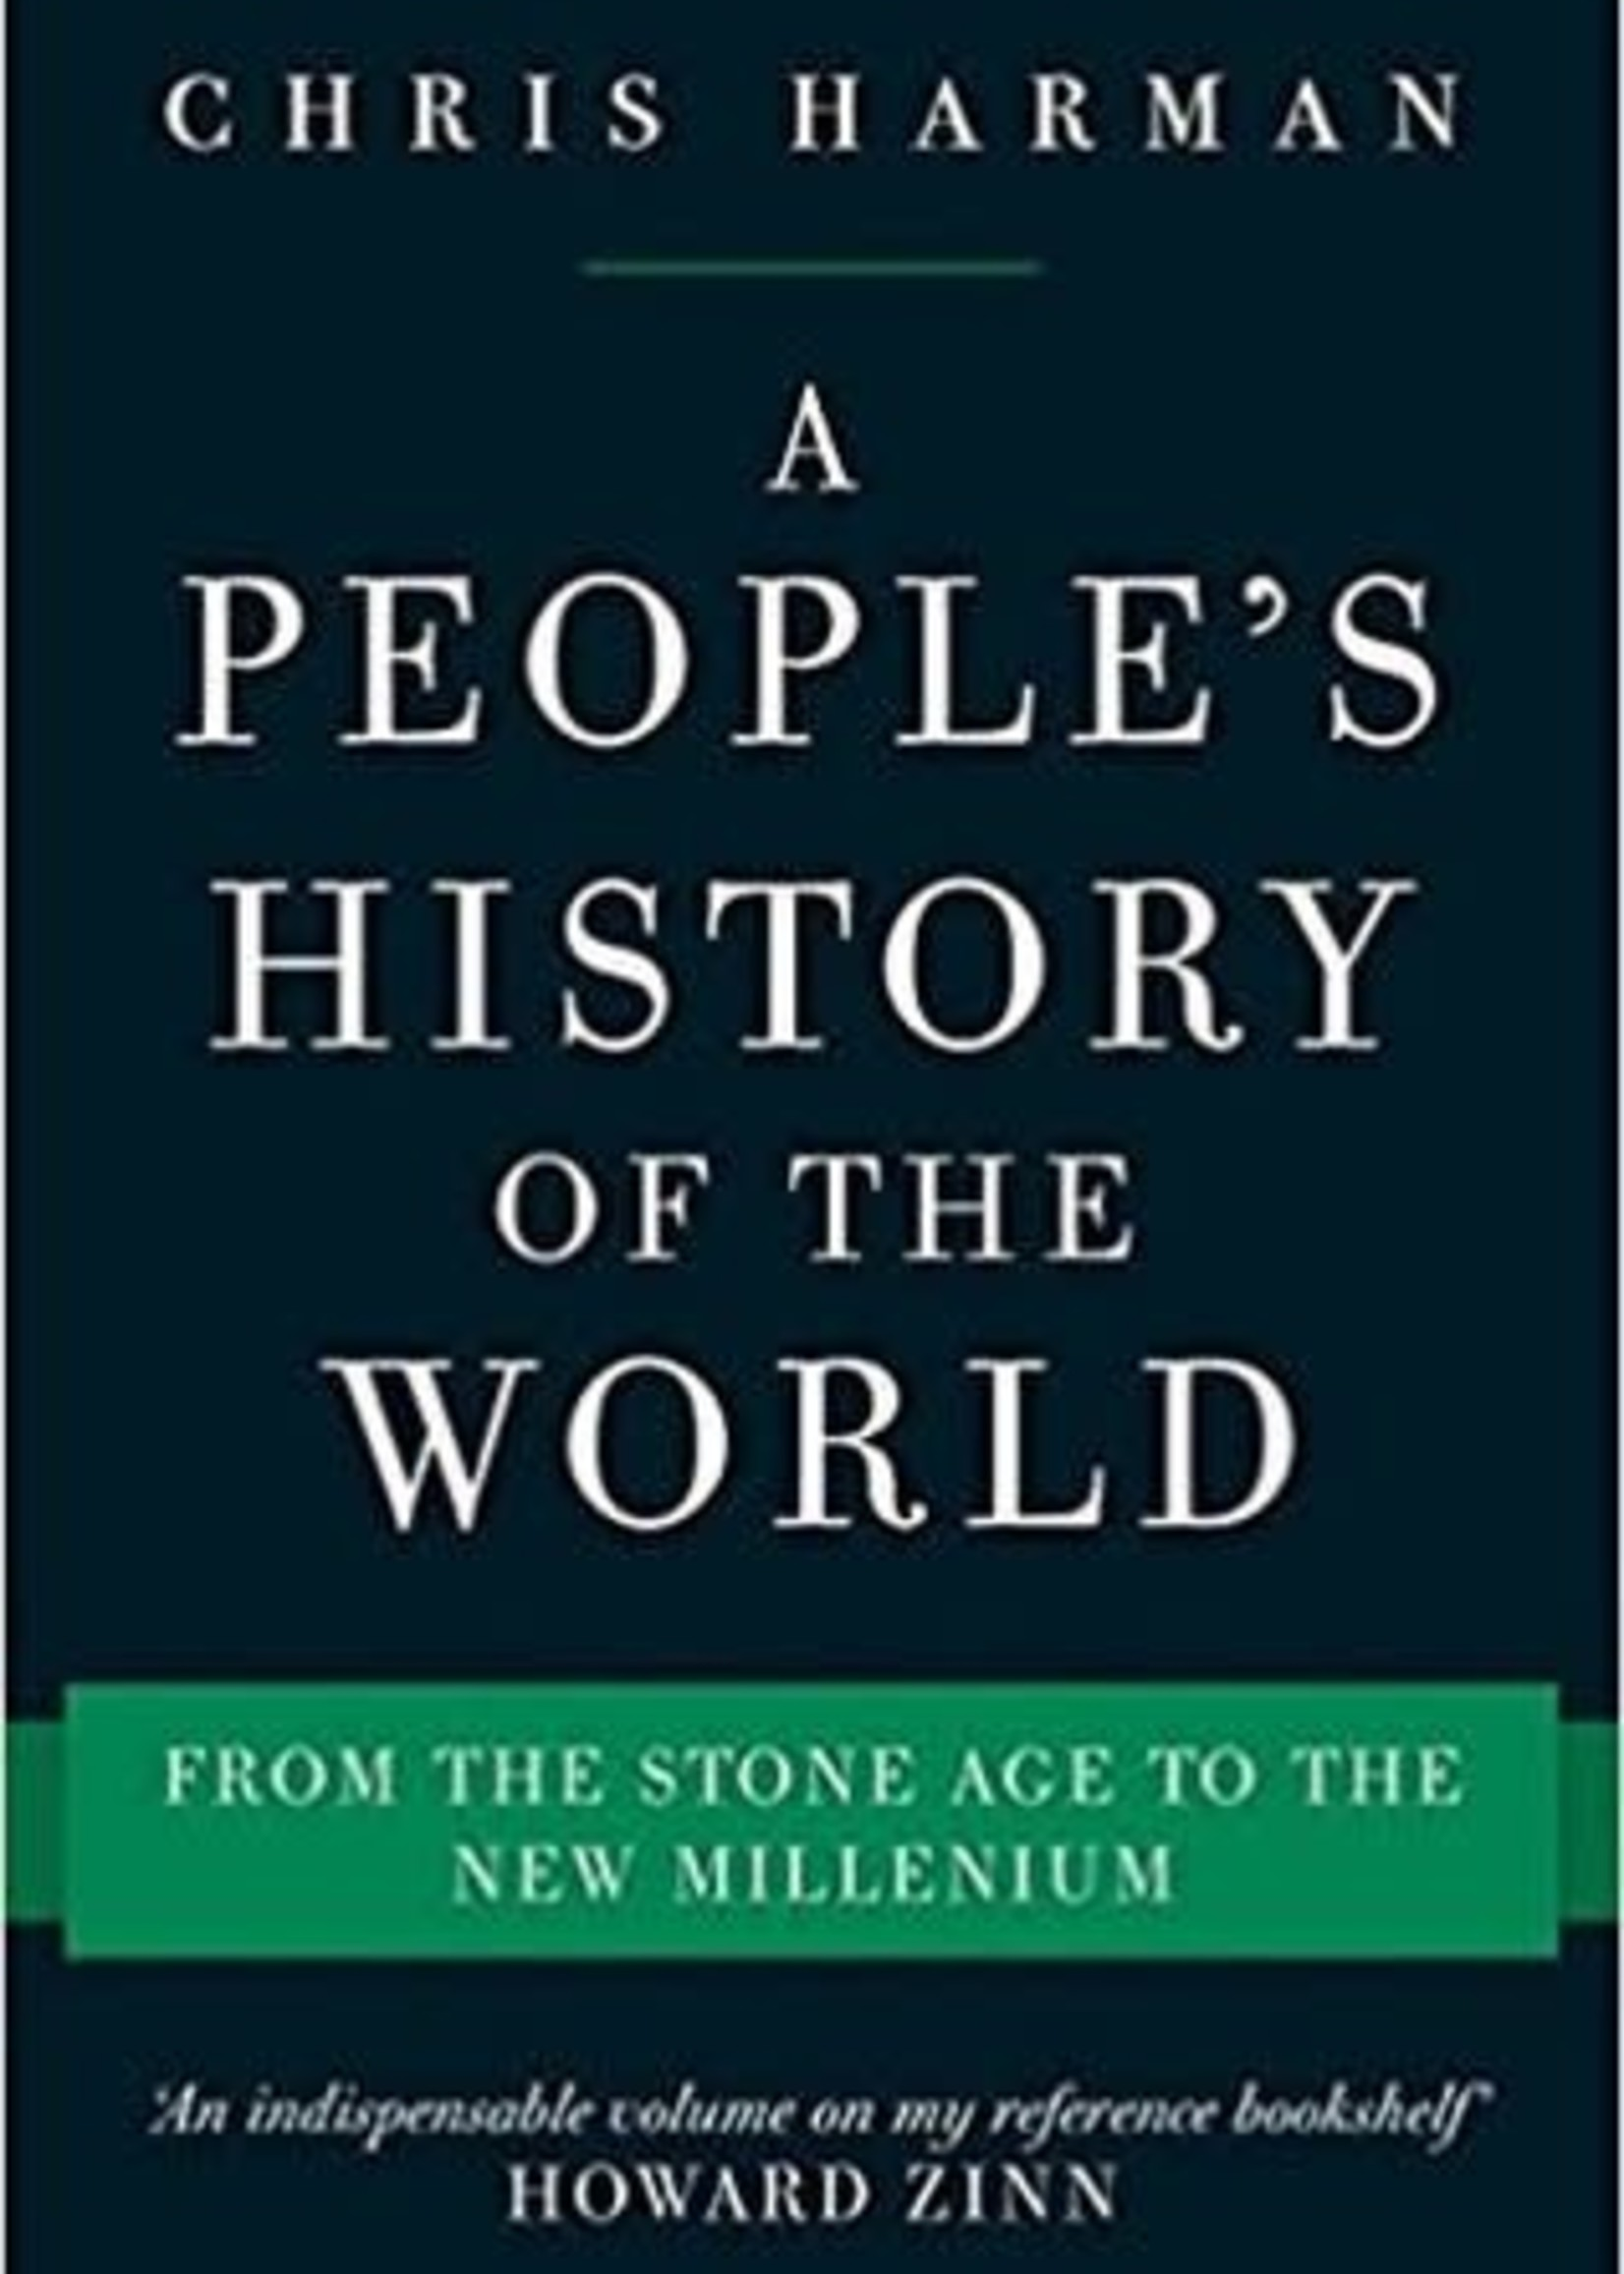 A People's History of the World: From the Stone Age to the New Millennium by Chris Harman